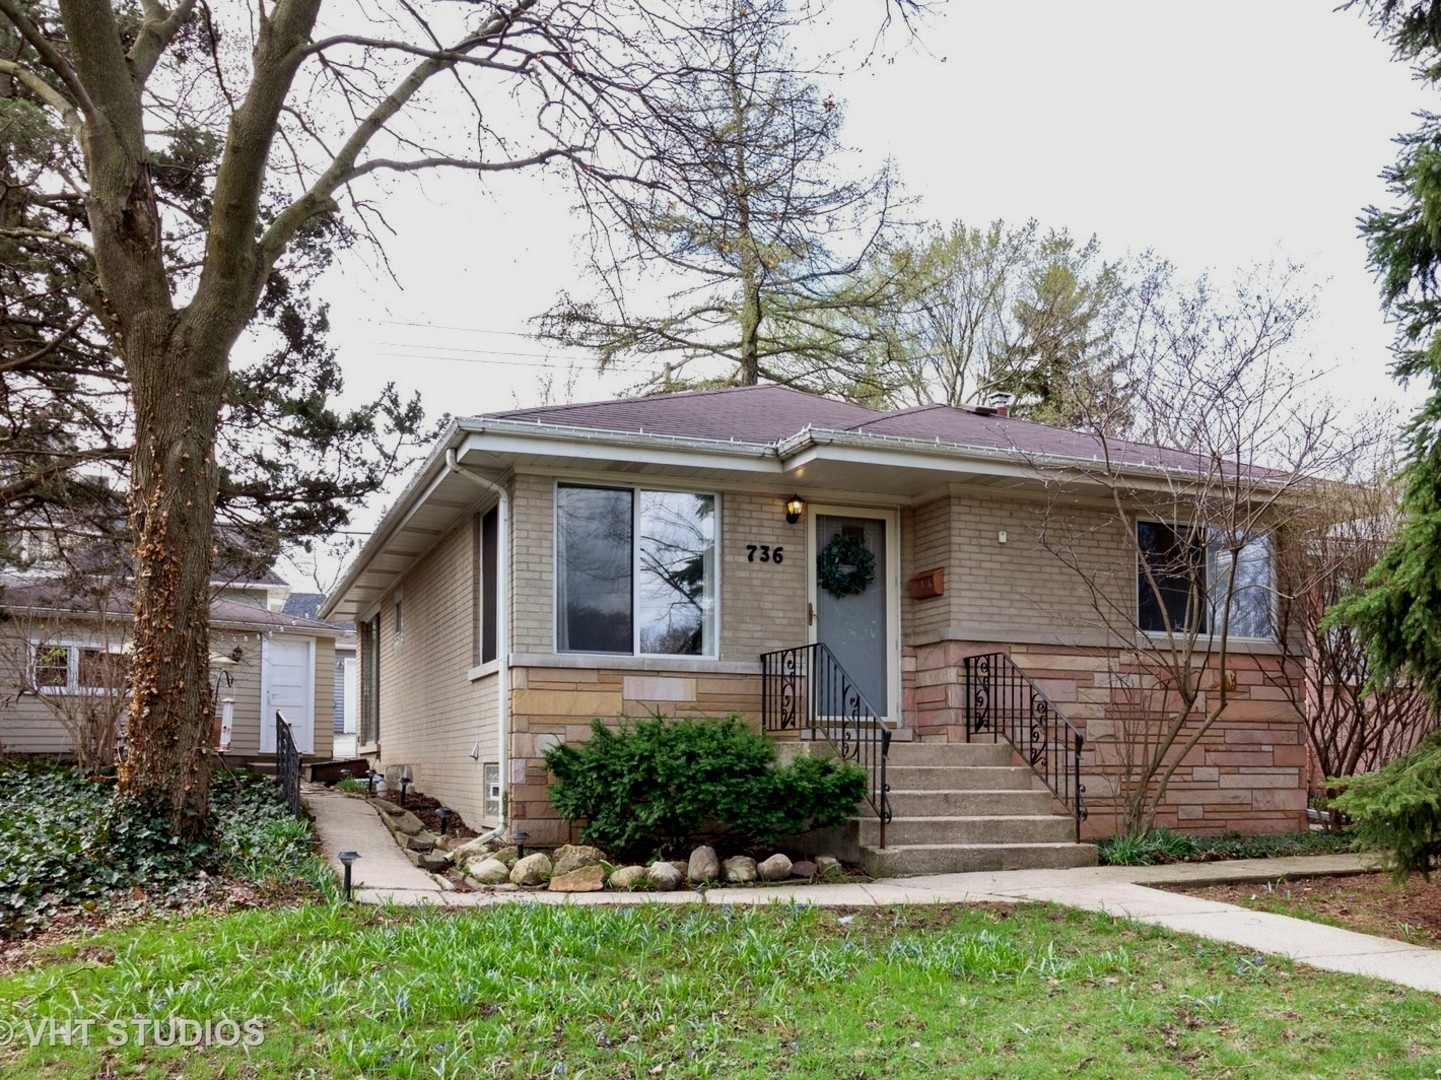 primary photo for 736 West Hinsdale Avenue, HINSDALE, IL 60521, US